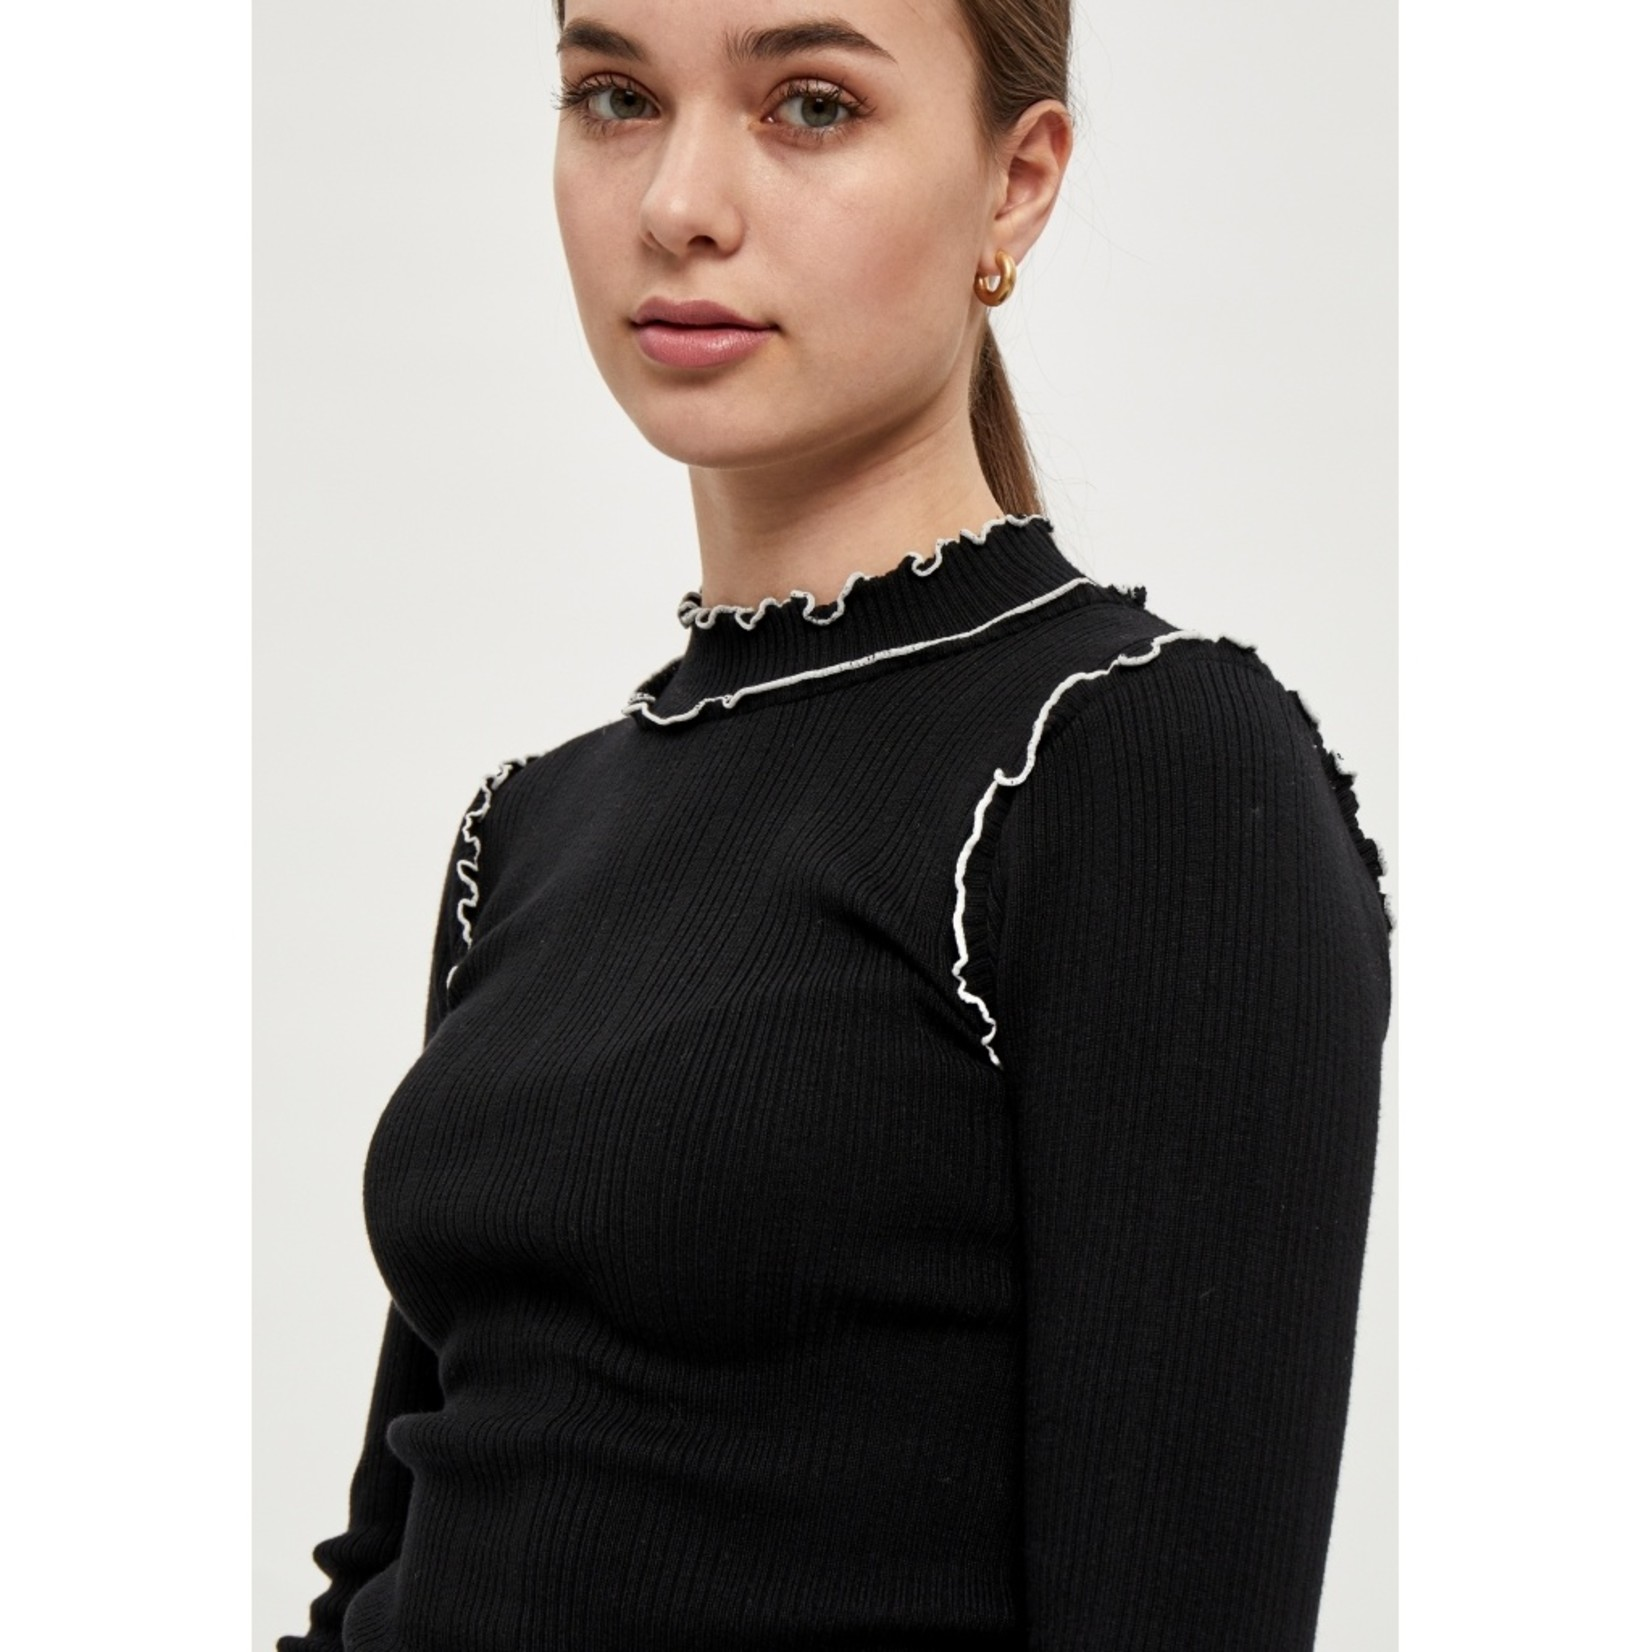 DESIRES GRY PULLOVER,lange mouw